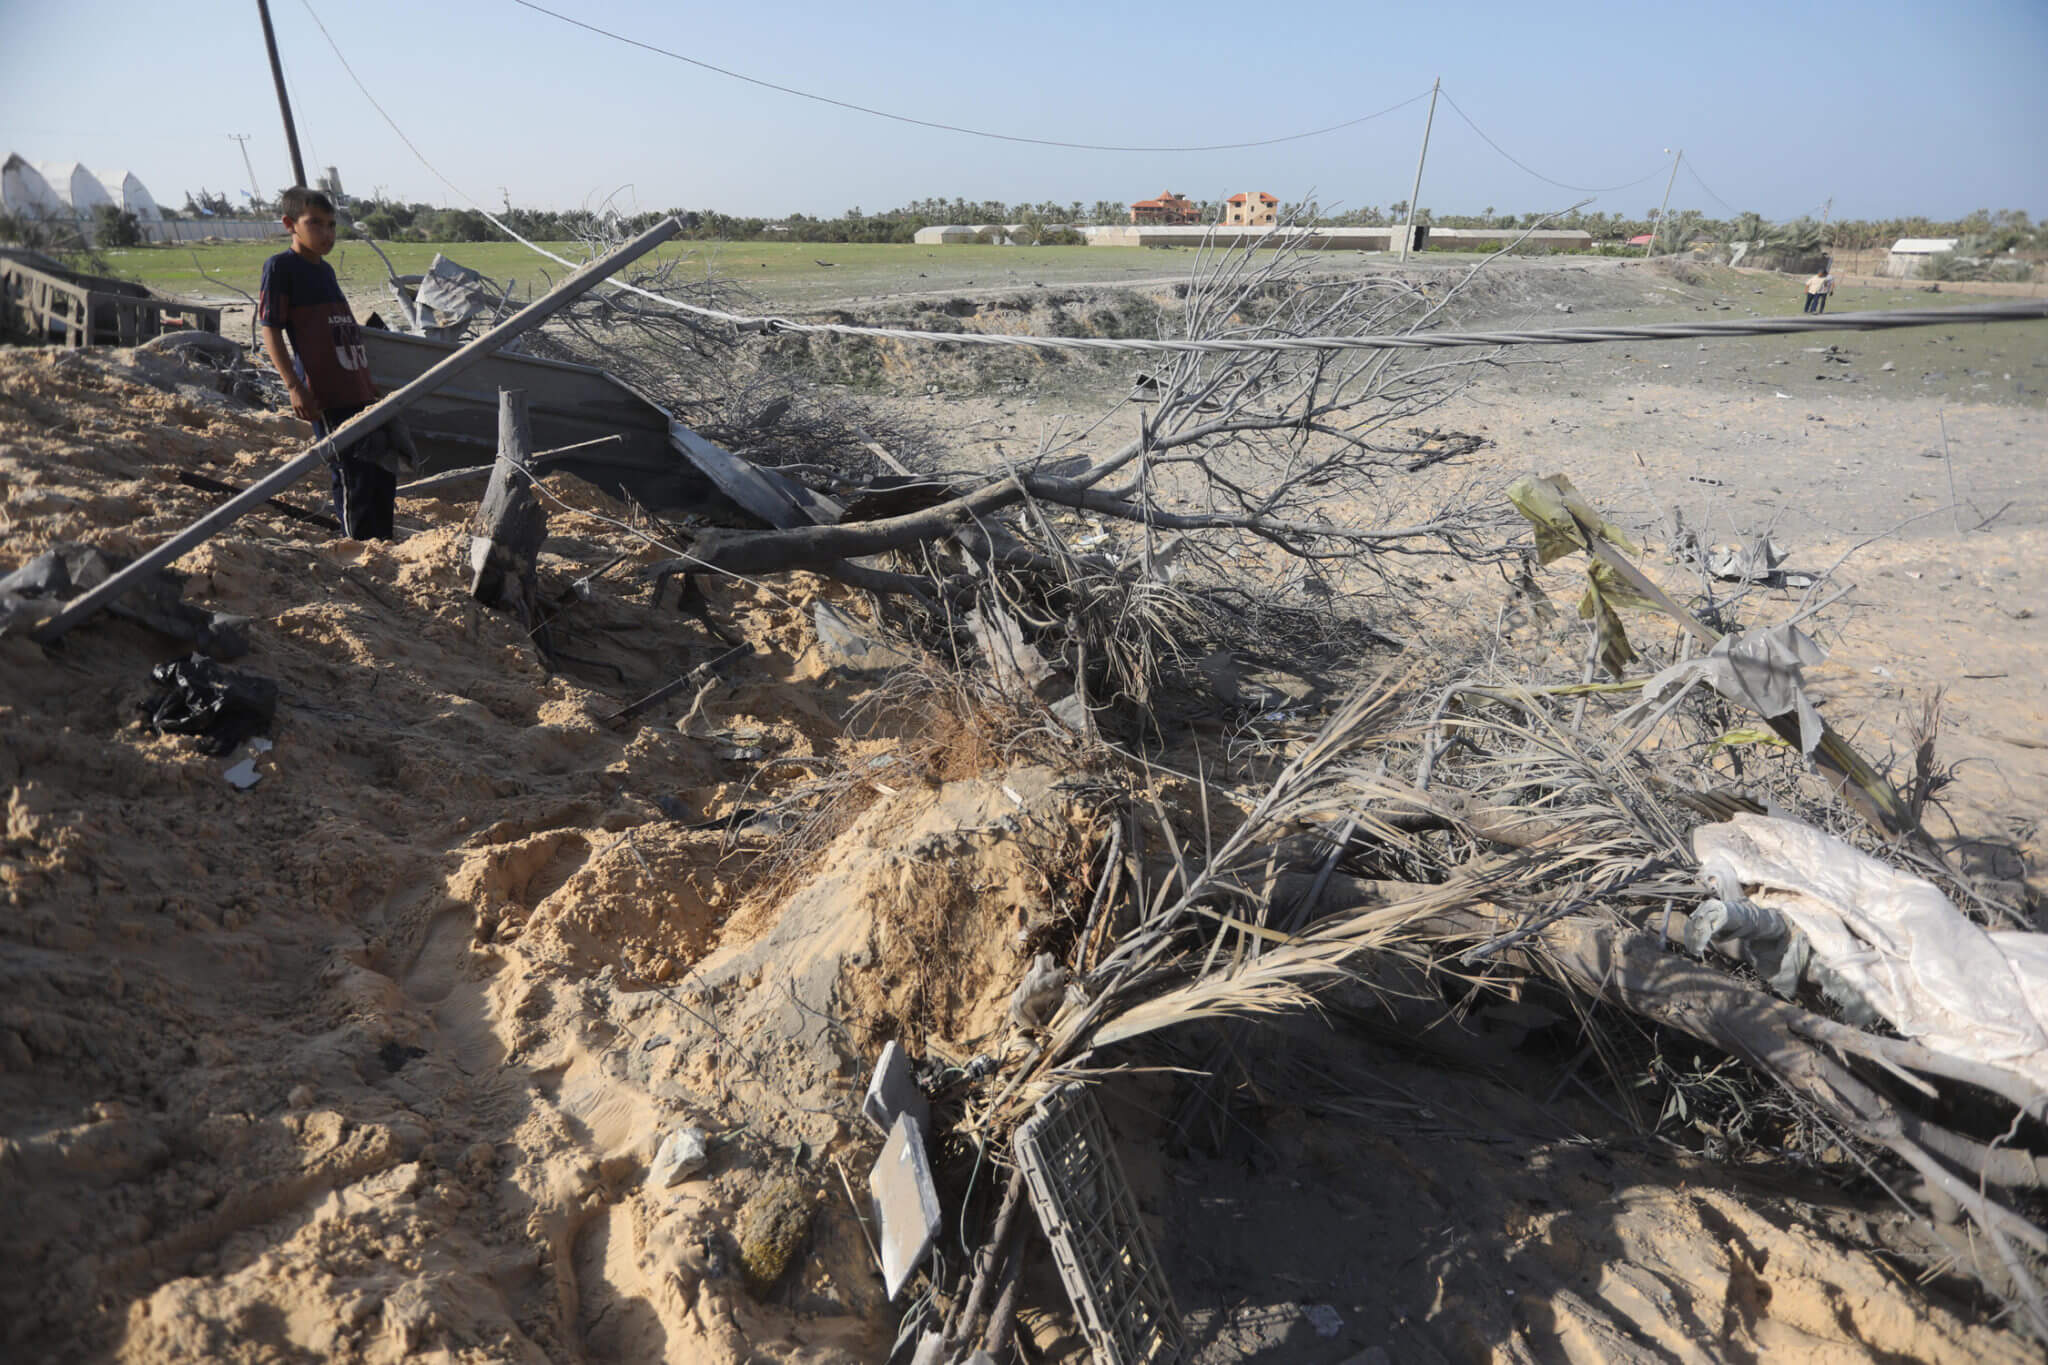 Trees in agricultural areas were uprooted throughout the Gaza Strip as a result of the shelling